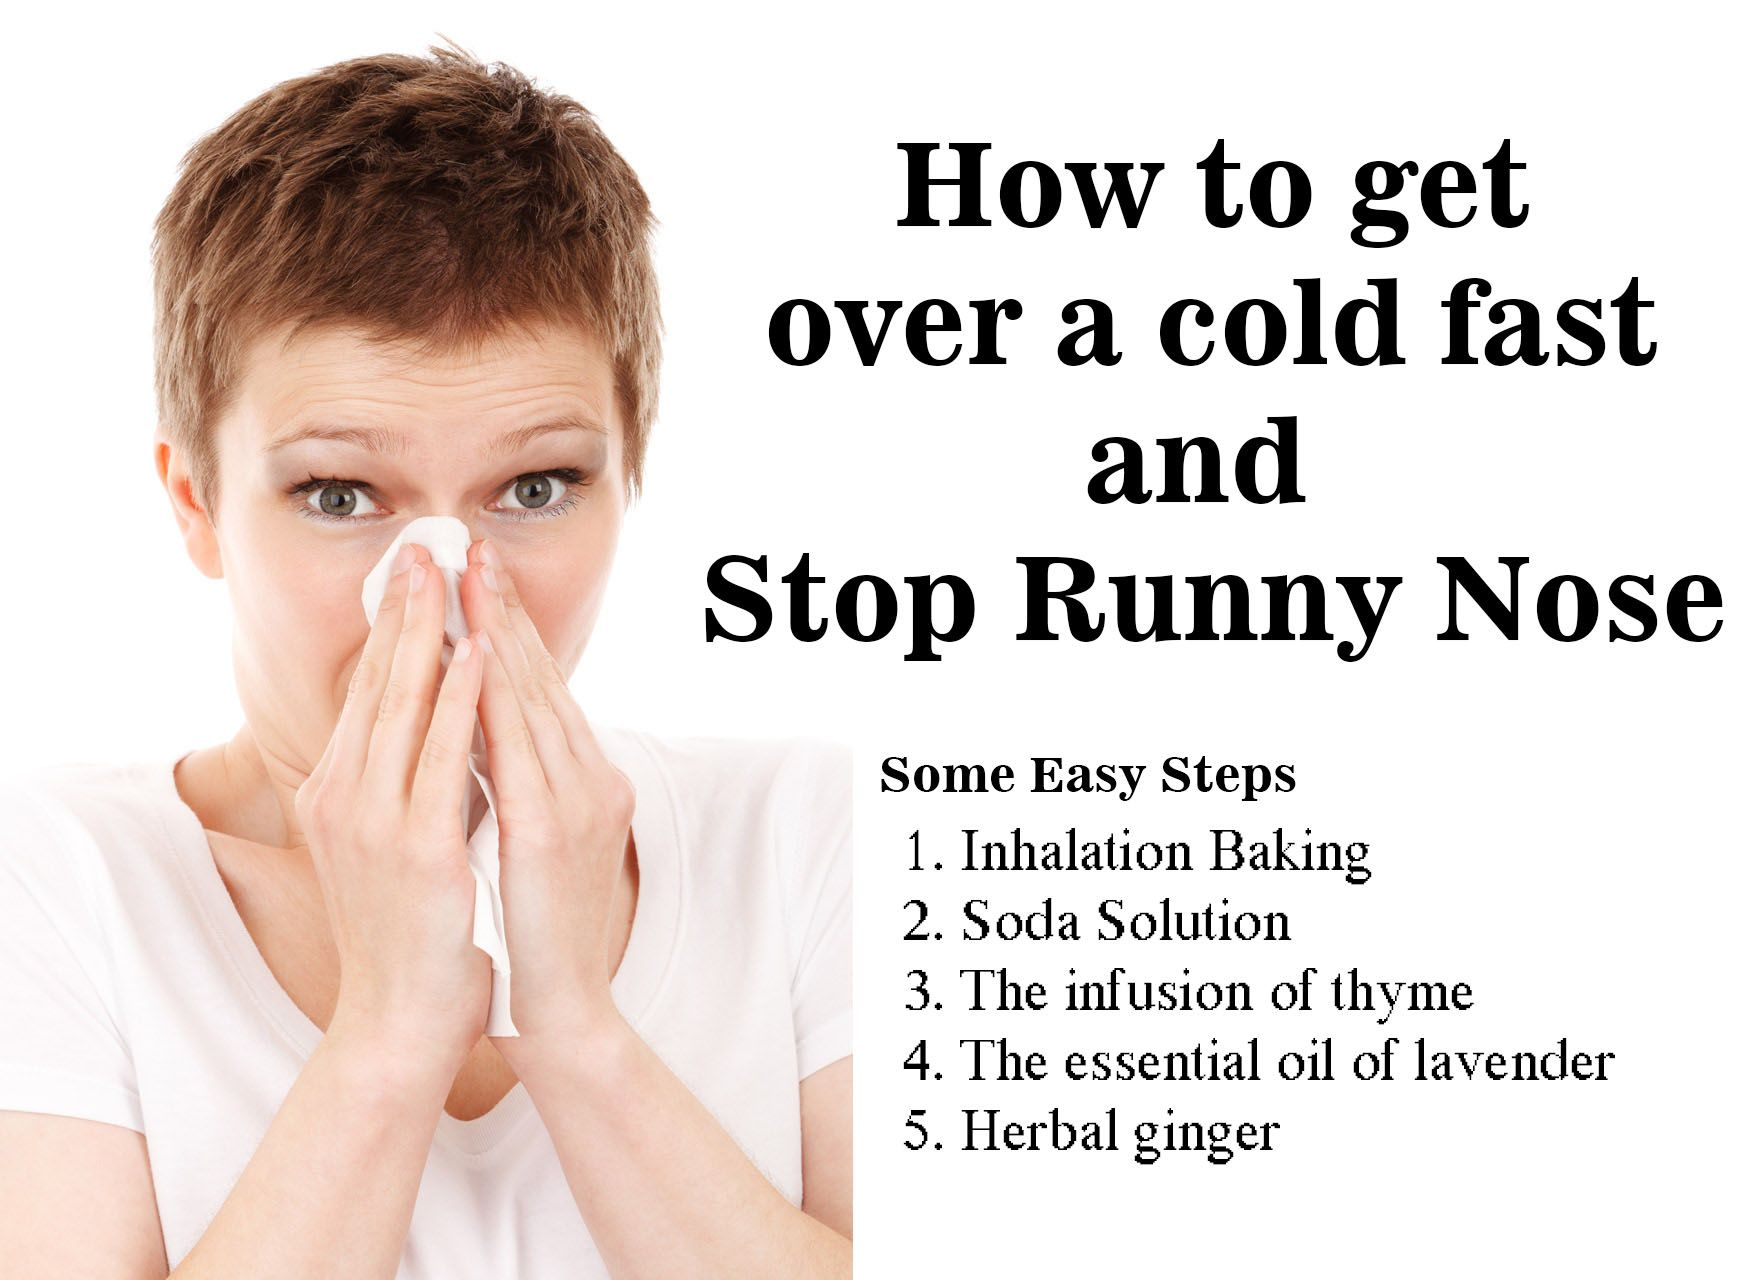 fa5ee5f3d47f4ec72ec91e8888ecc72d - How To Get A Sneeze Out Of My Nose